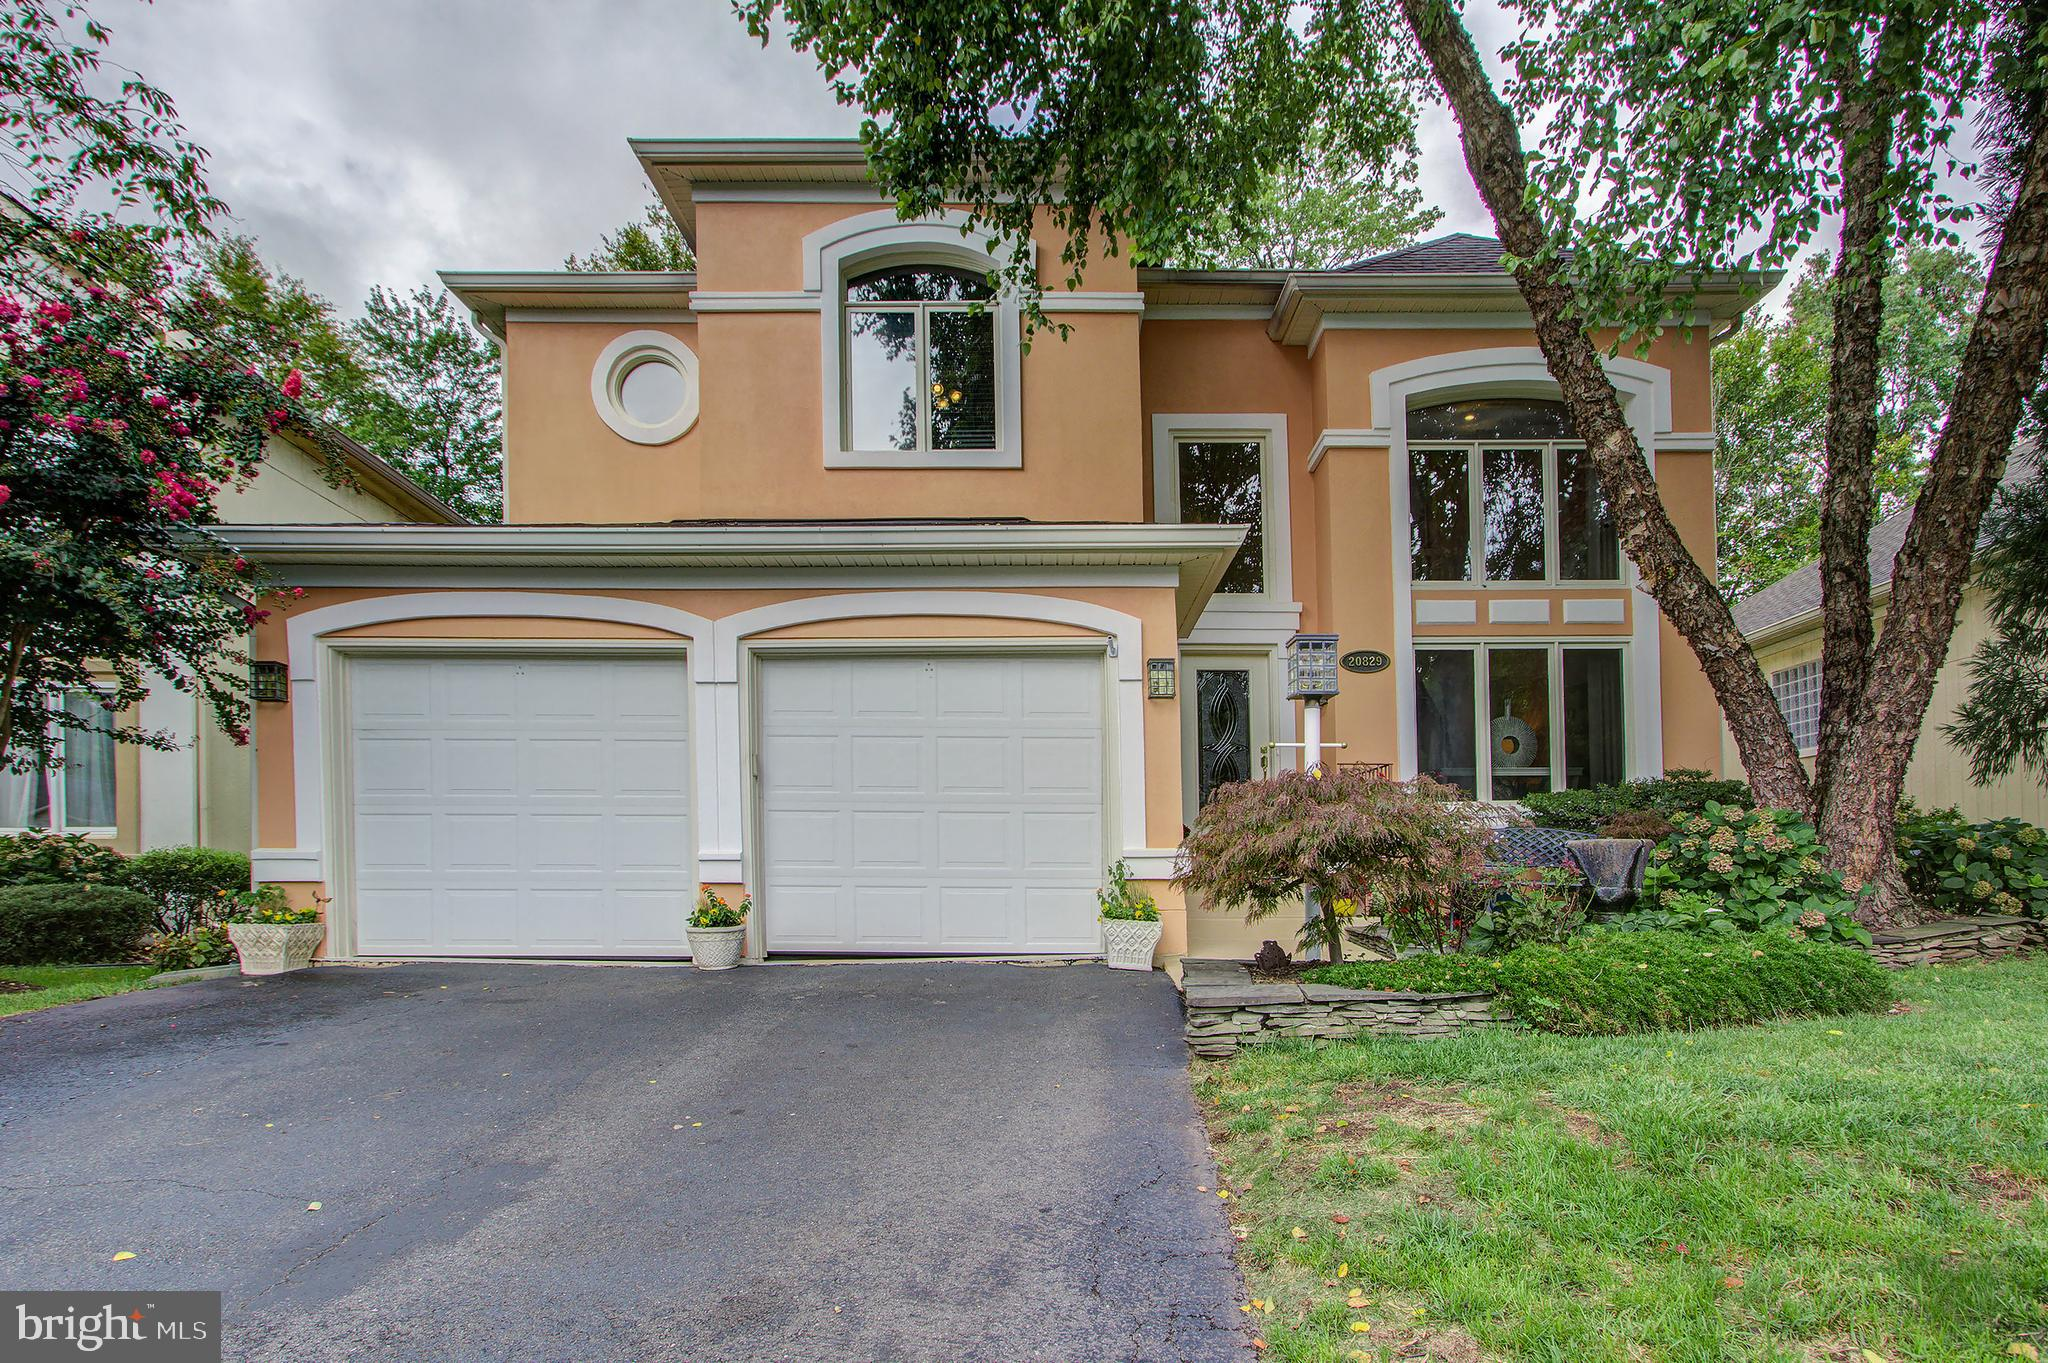 Lovely Single Family Home in Desirable Lowes Island Neighborhood.  This Home of nearly 3,800 Sq Ft o